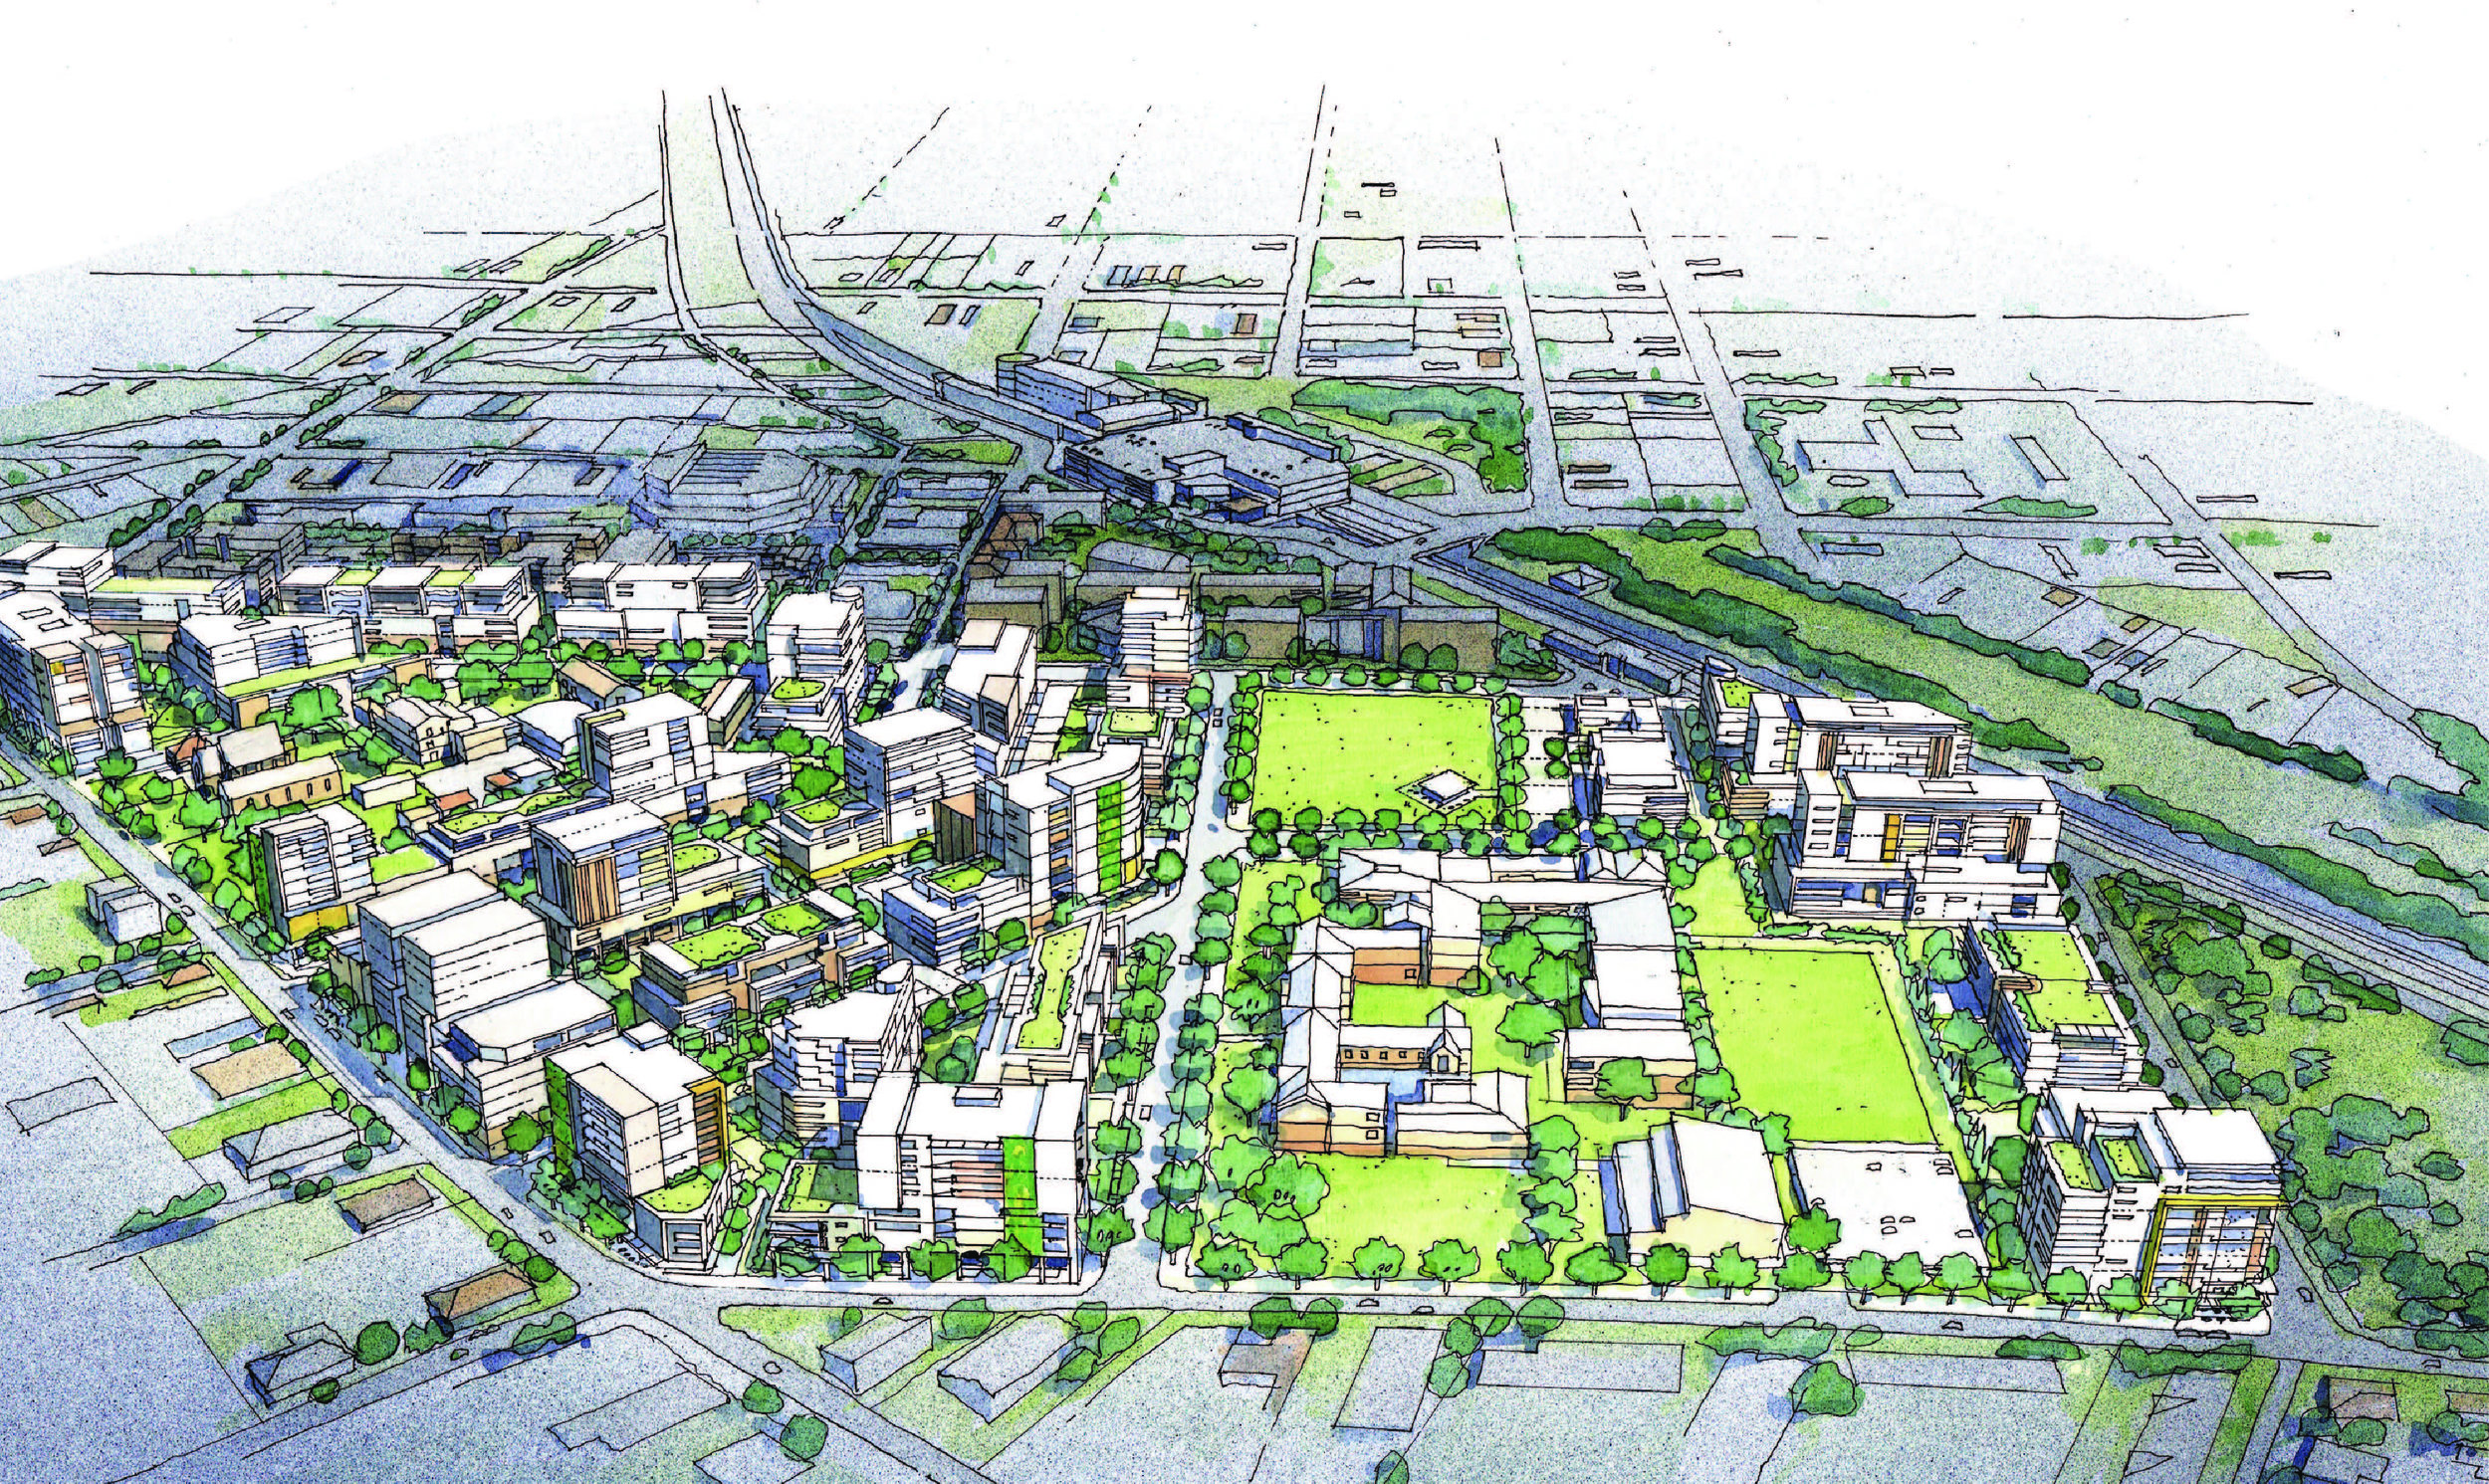 Kogarah North Precinct Master Plan